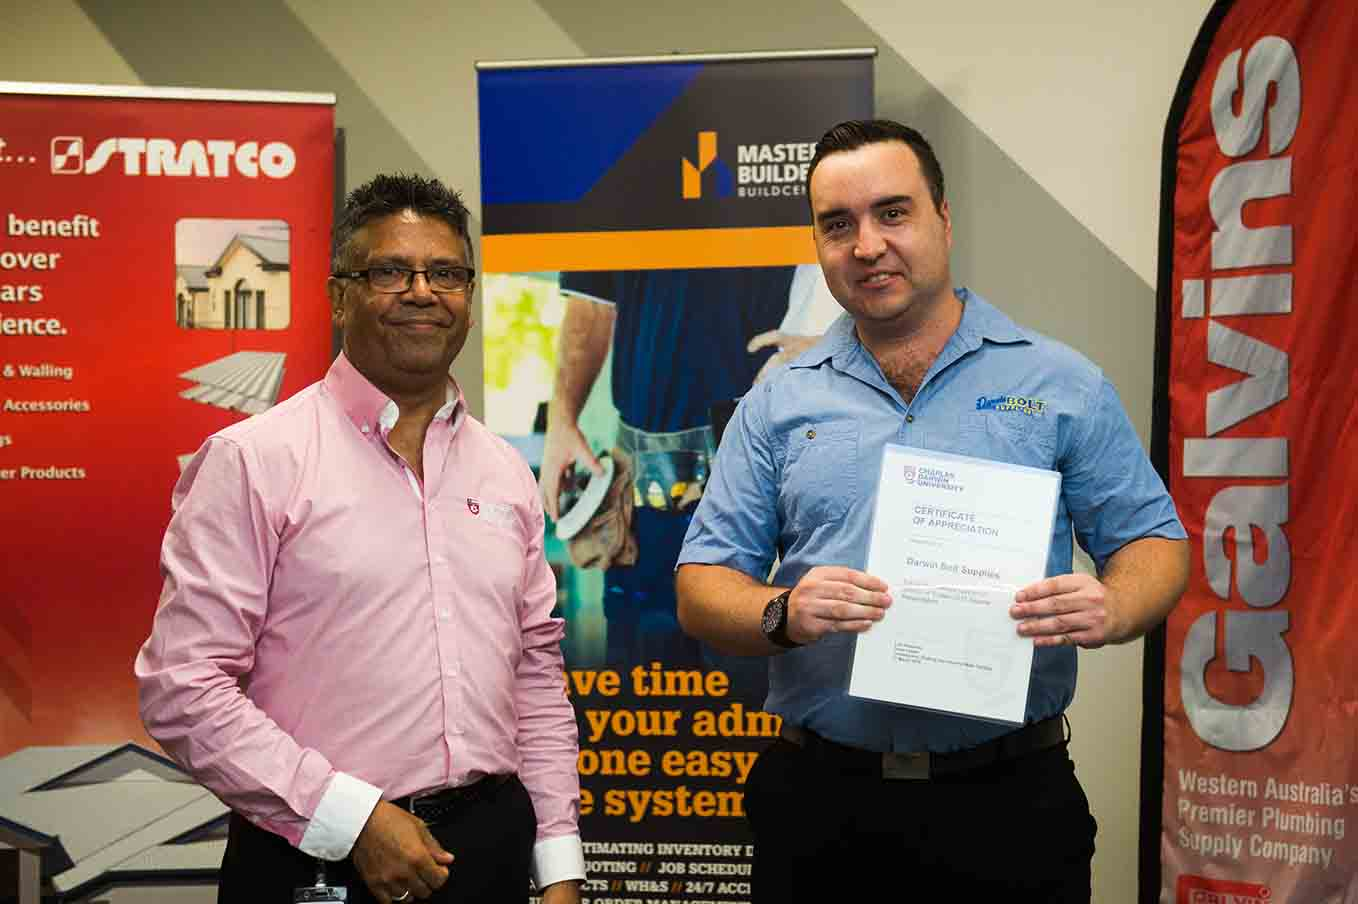 Luis Espinoza presents Lewis Knibbs from Darwin Bolt Supplies with a Certificate of Appreciation for major sponsorship and ongoing support to CDU's plumbing and carpentry department